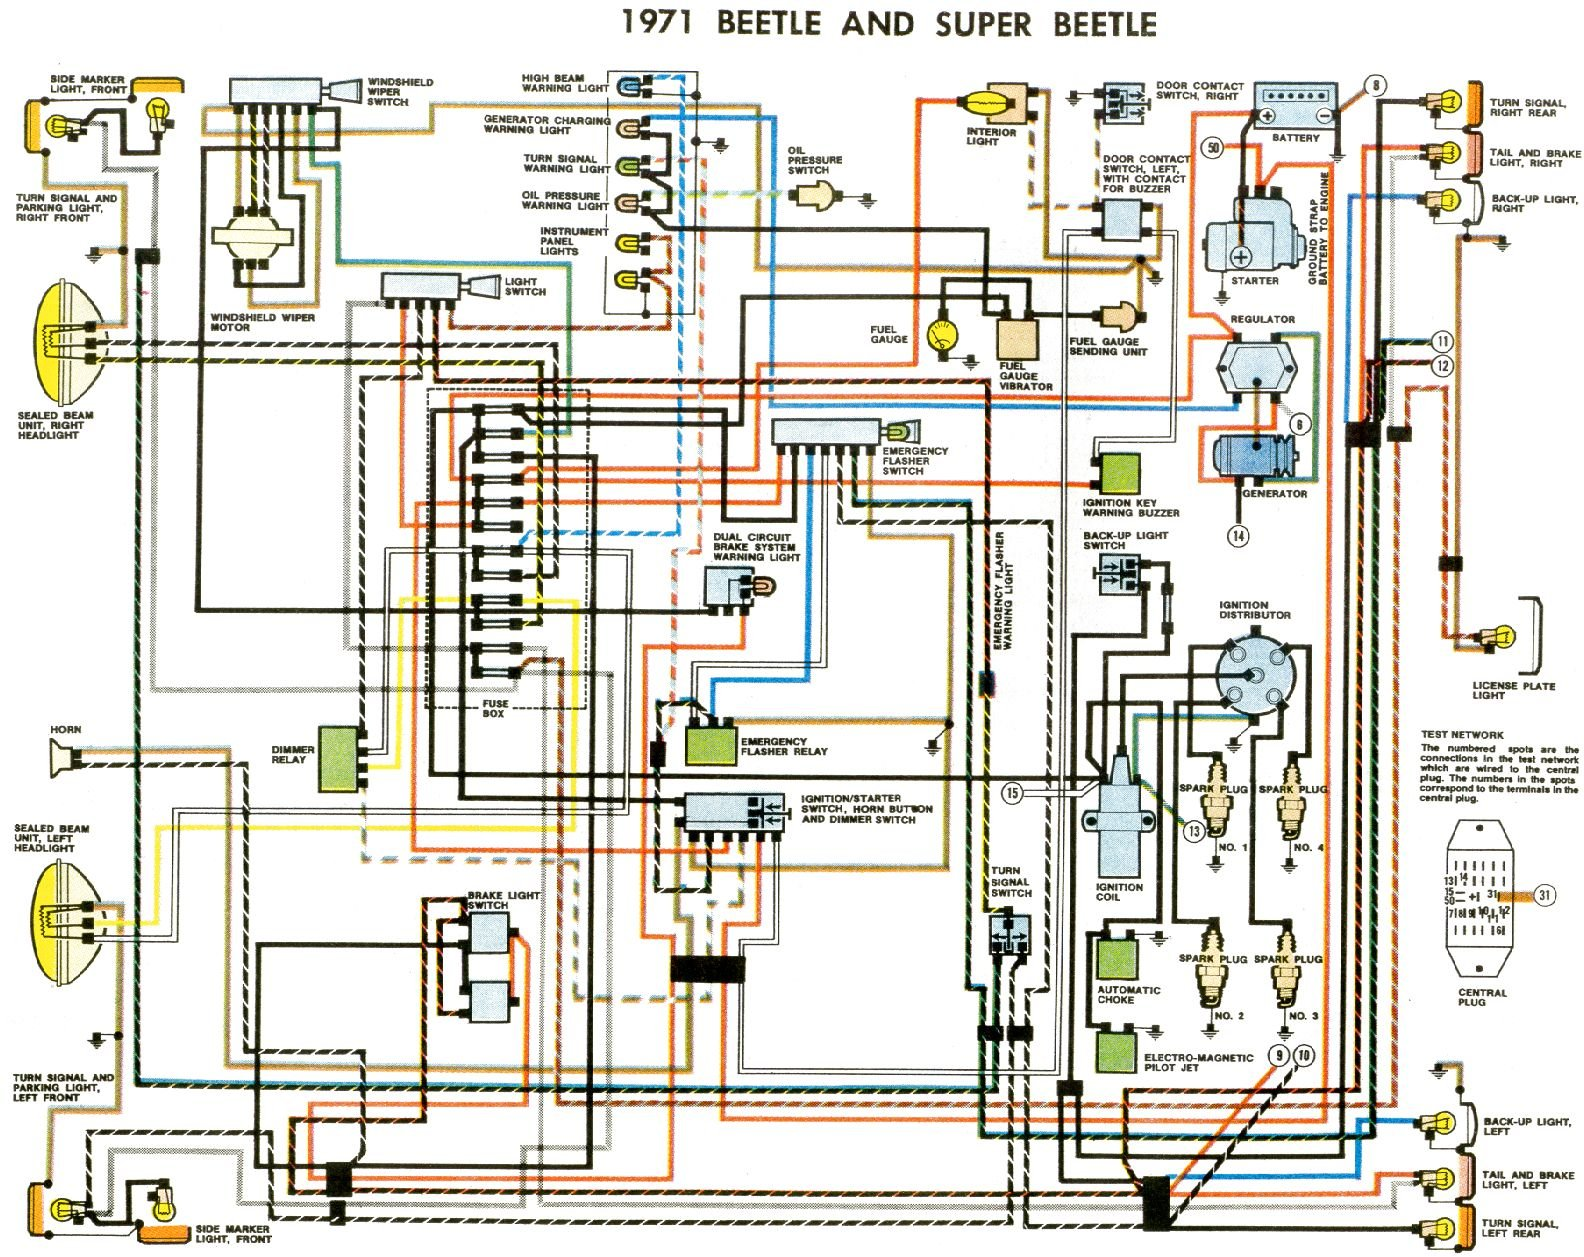 Surprising 1972 Vw Bug Wiring Diagram Wiring Diagram Wiring 101 Mecadwellnesstrialsorg